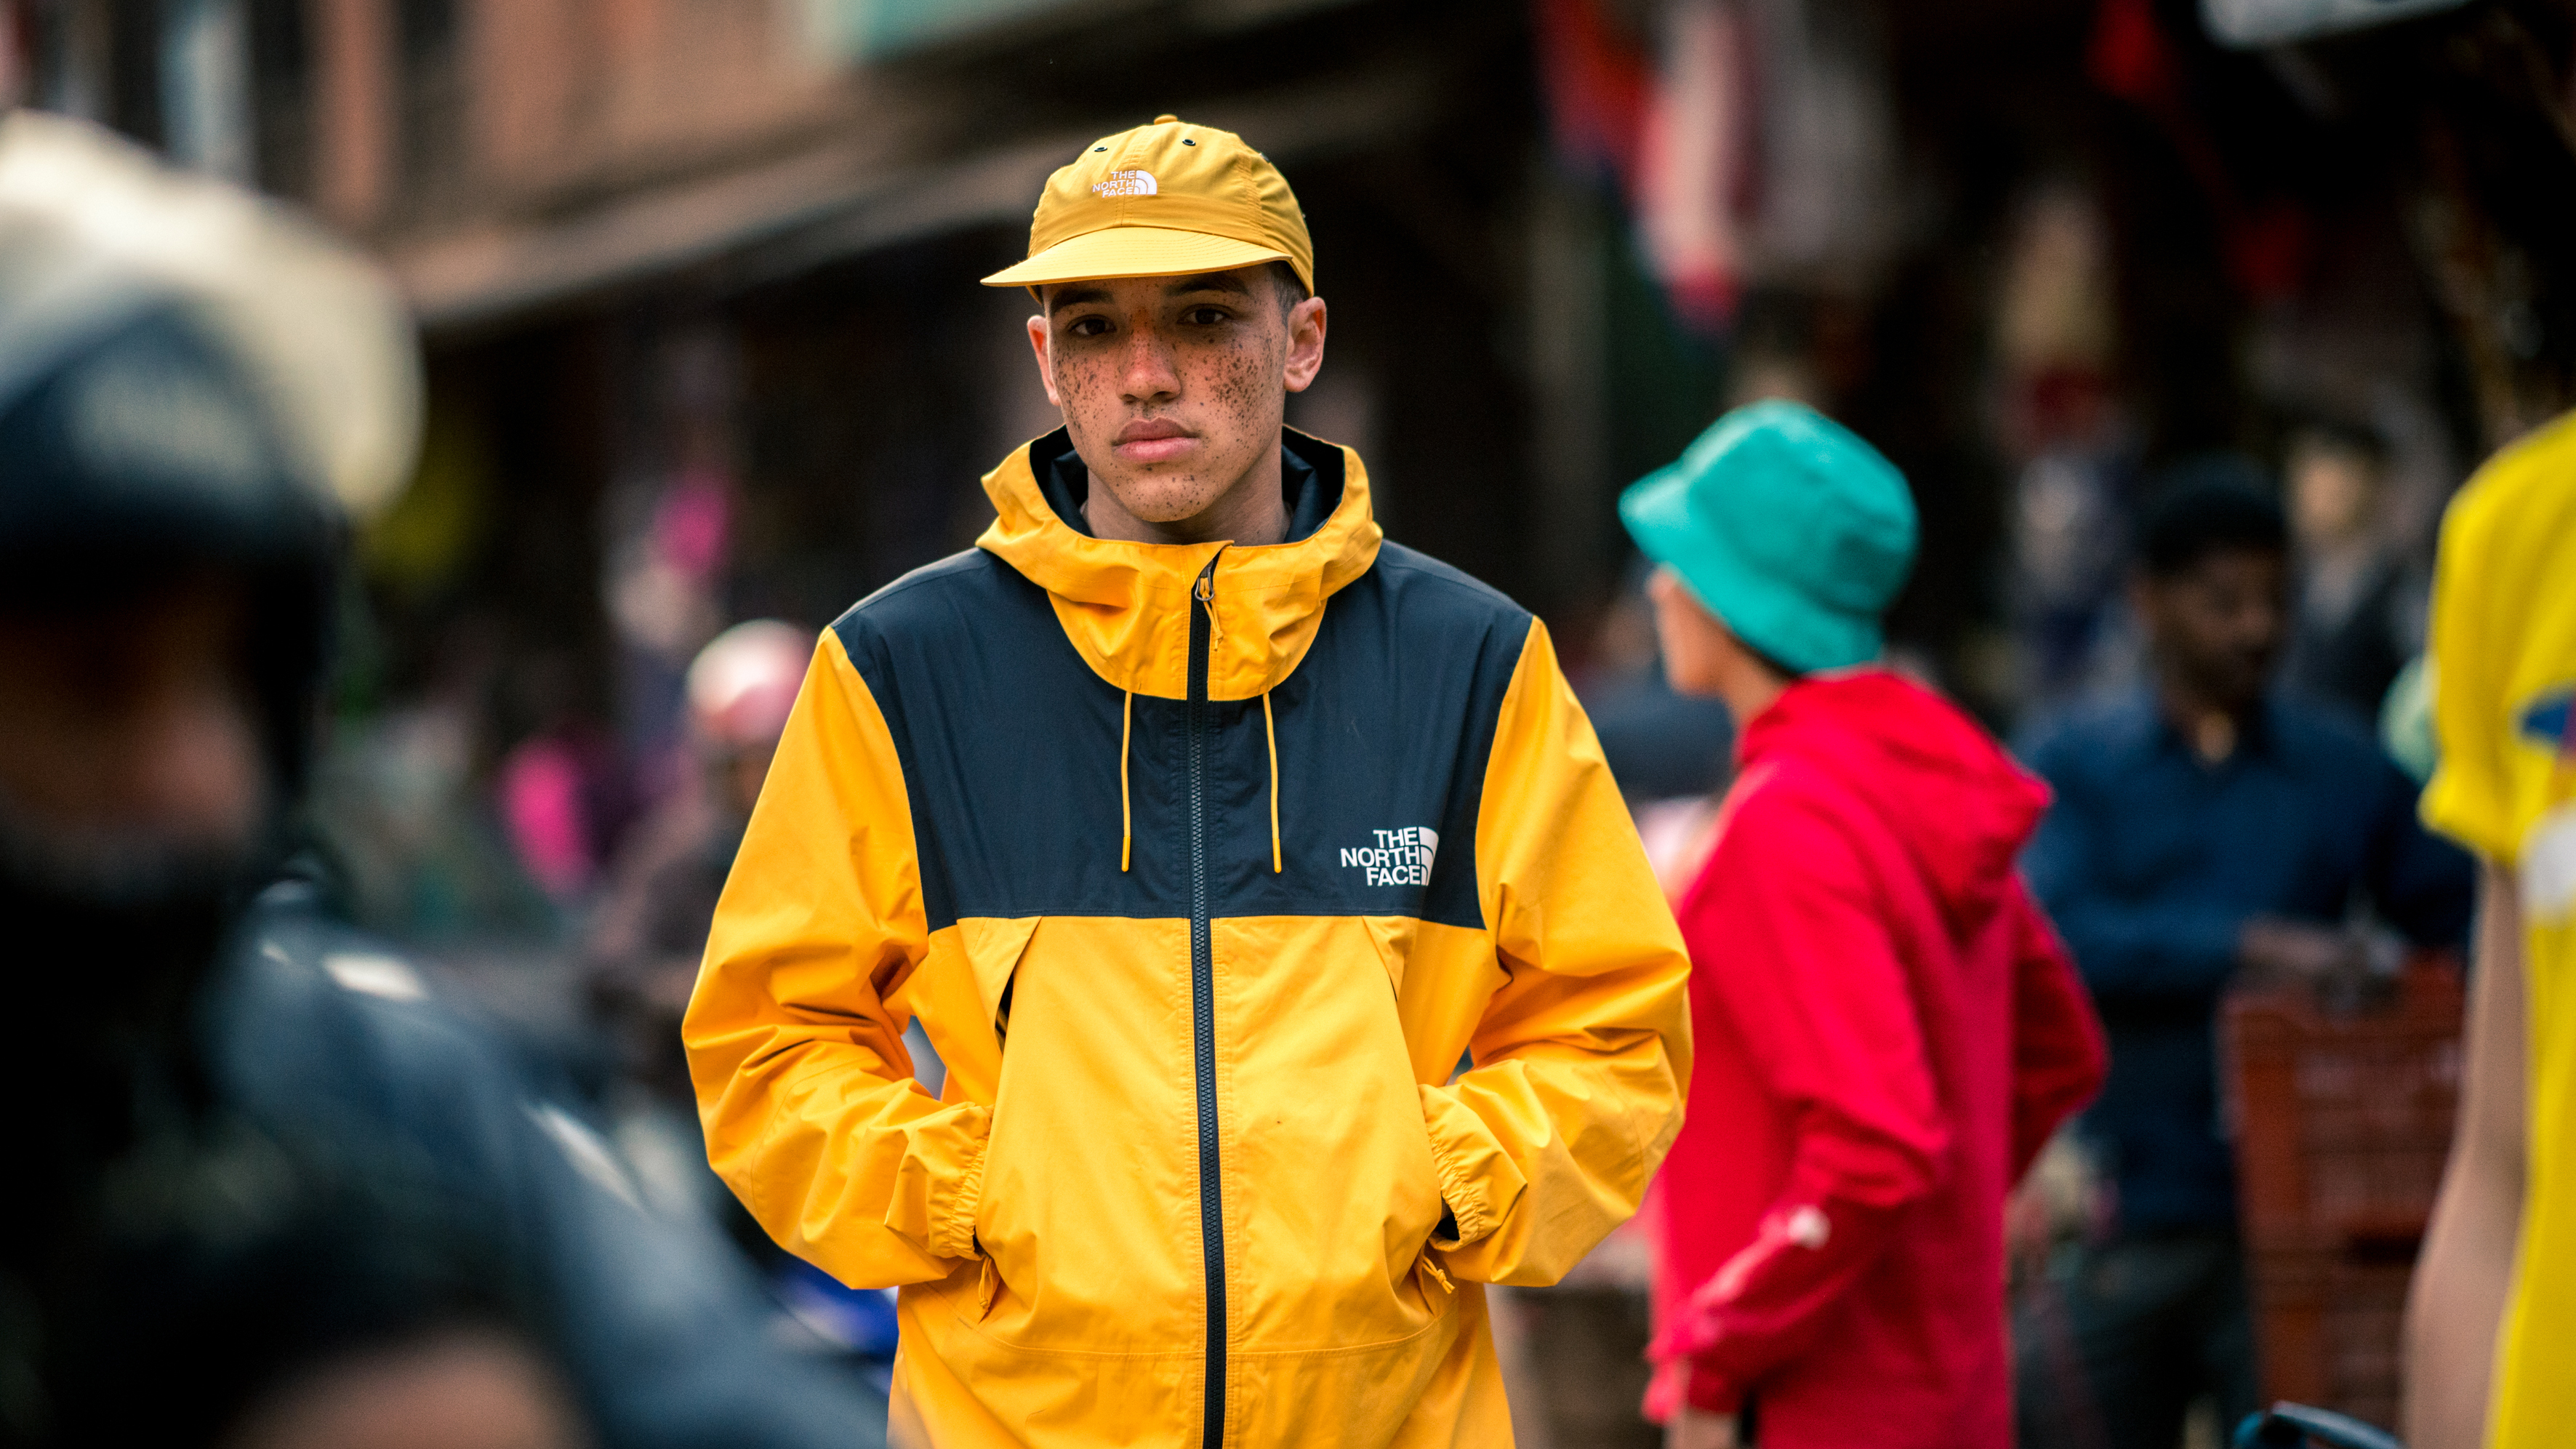 b8b0f2478 The North Face's new summer collection is inspired by Himalayan ...